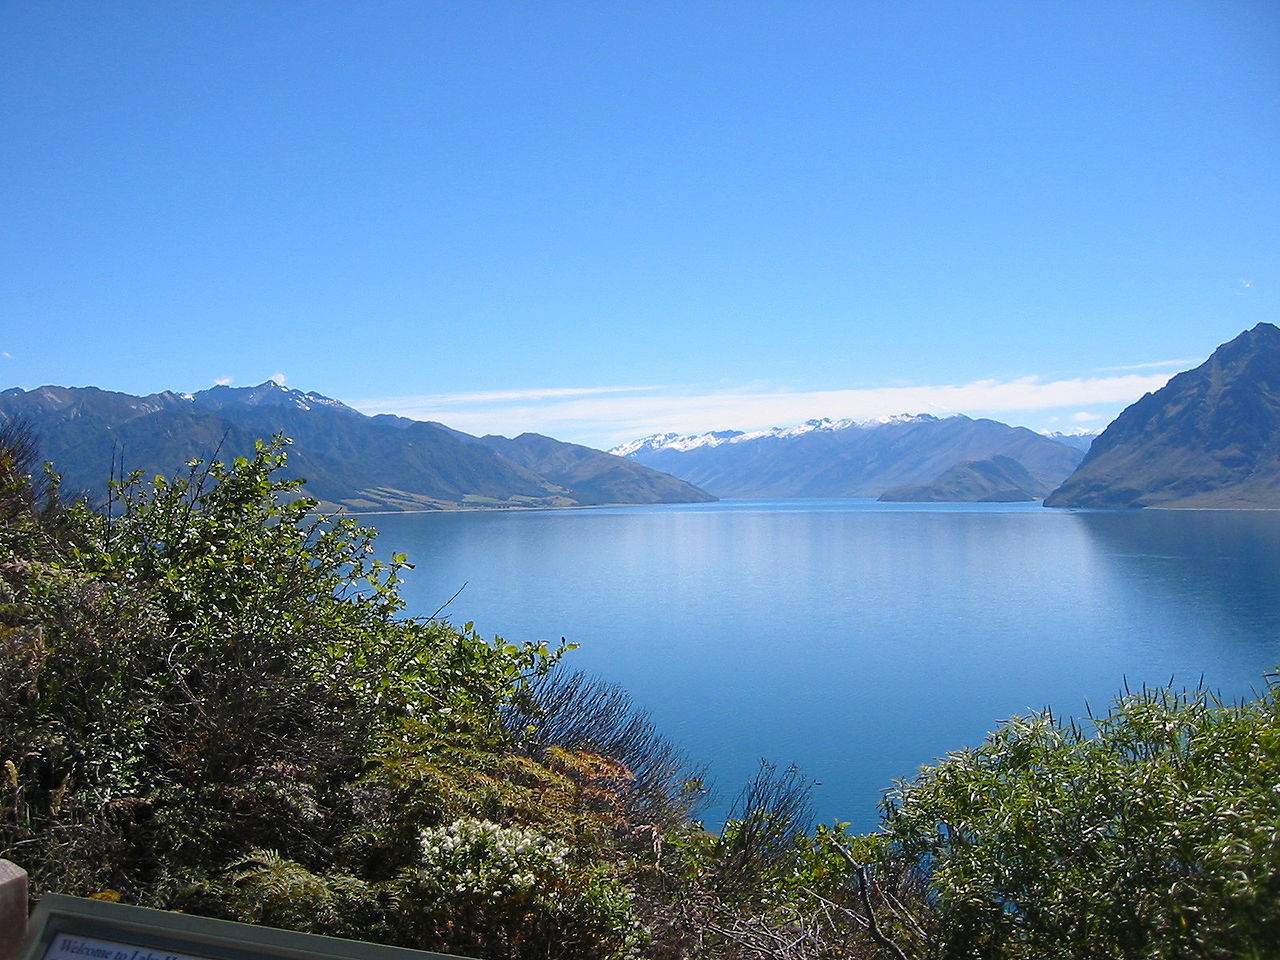 New Zealand Picture: File:Lake Hawea, New Zealand.jpg